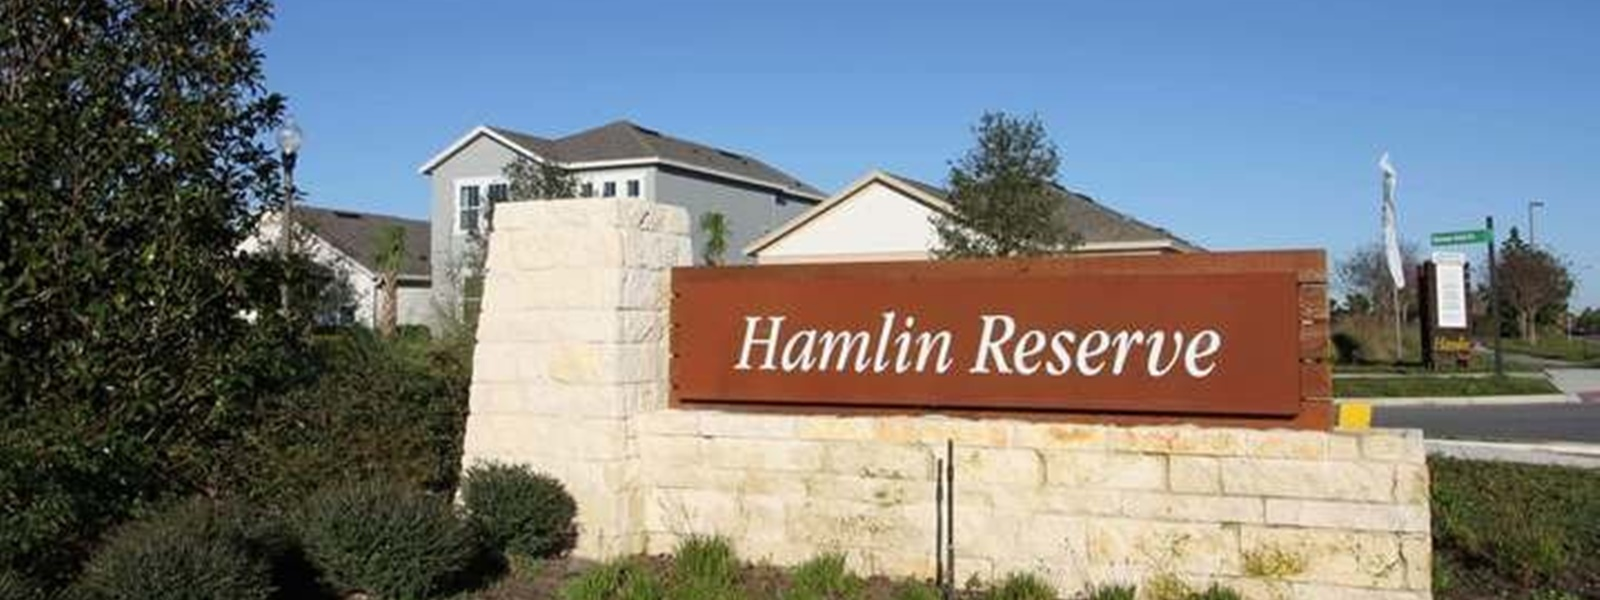 Hamlin Reserve Homes For Sale